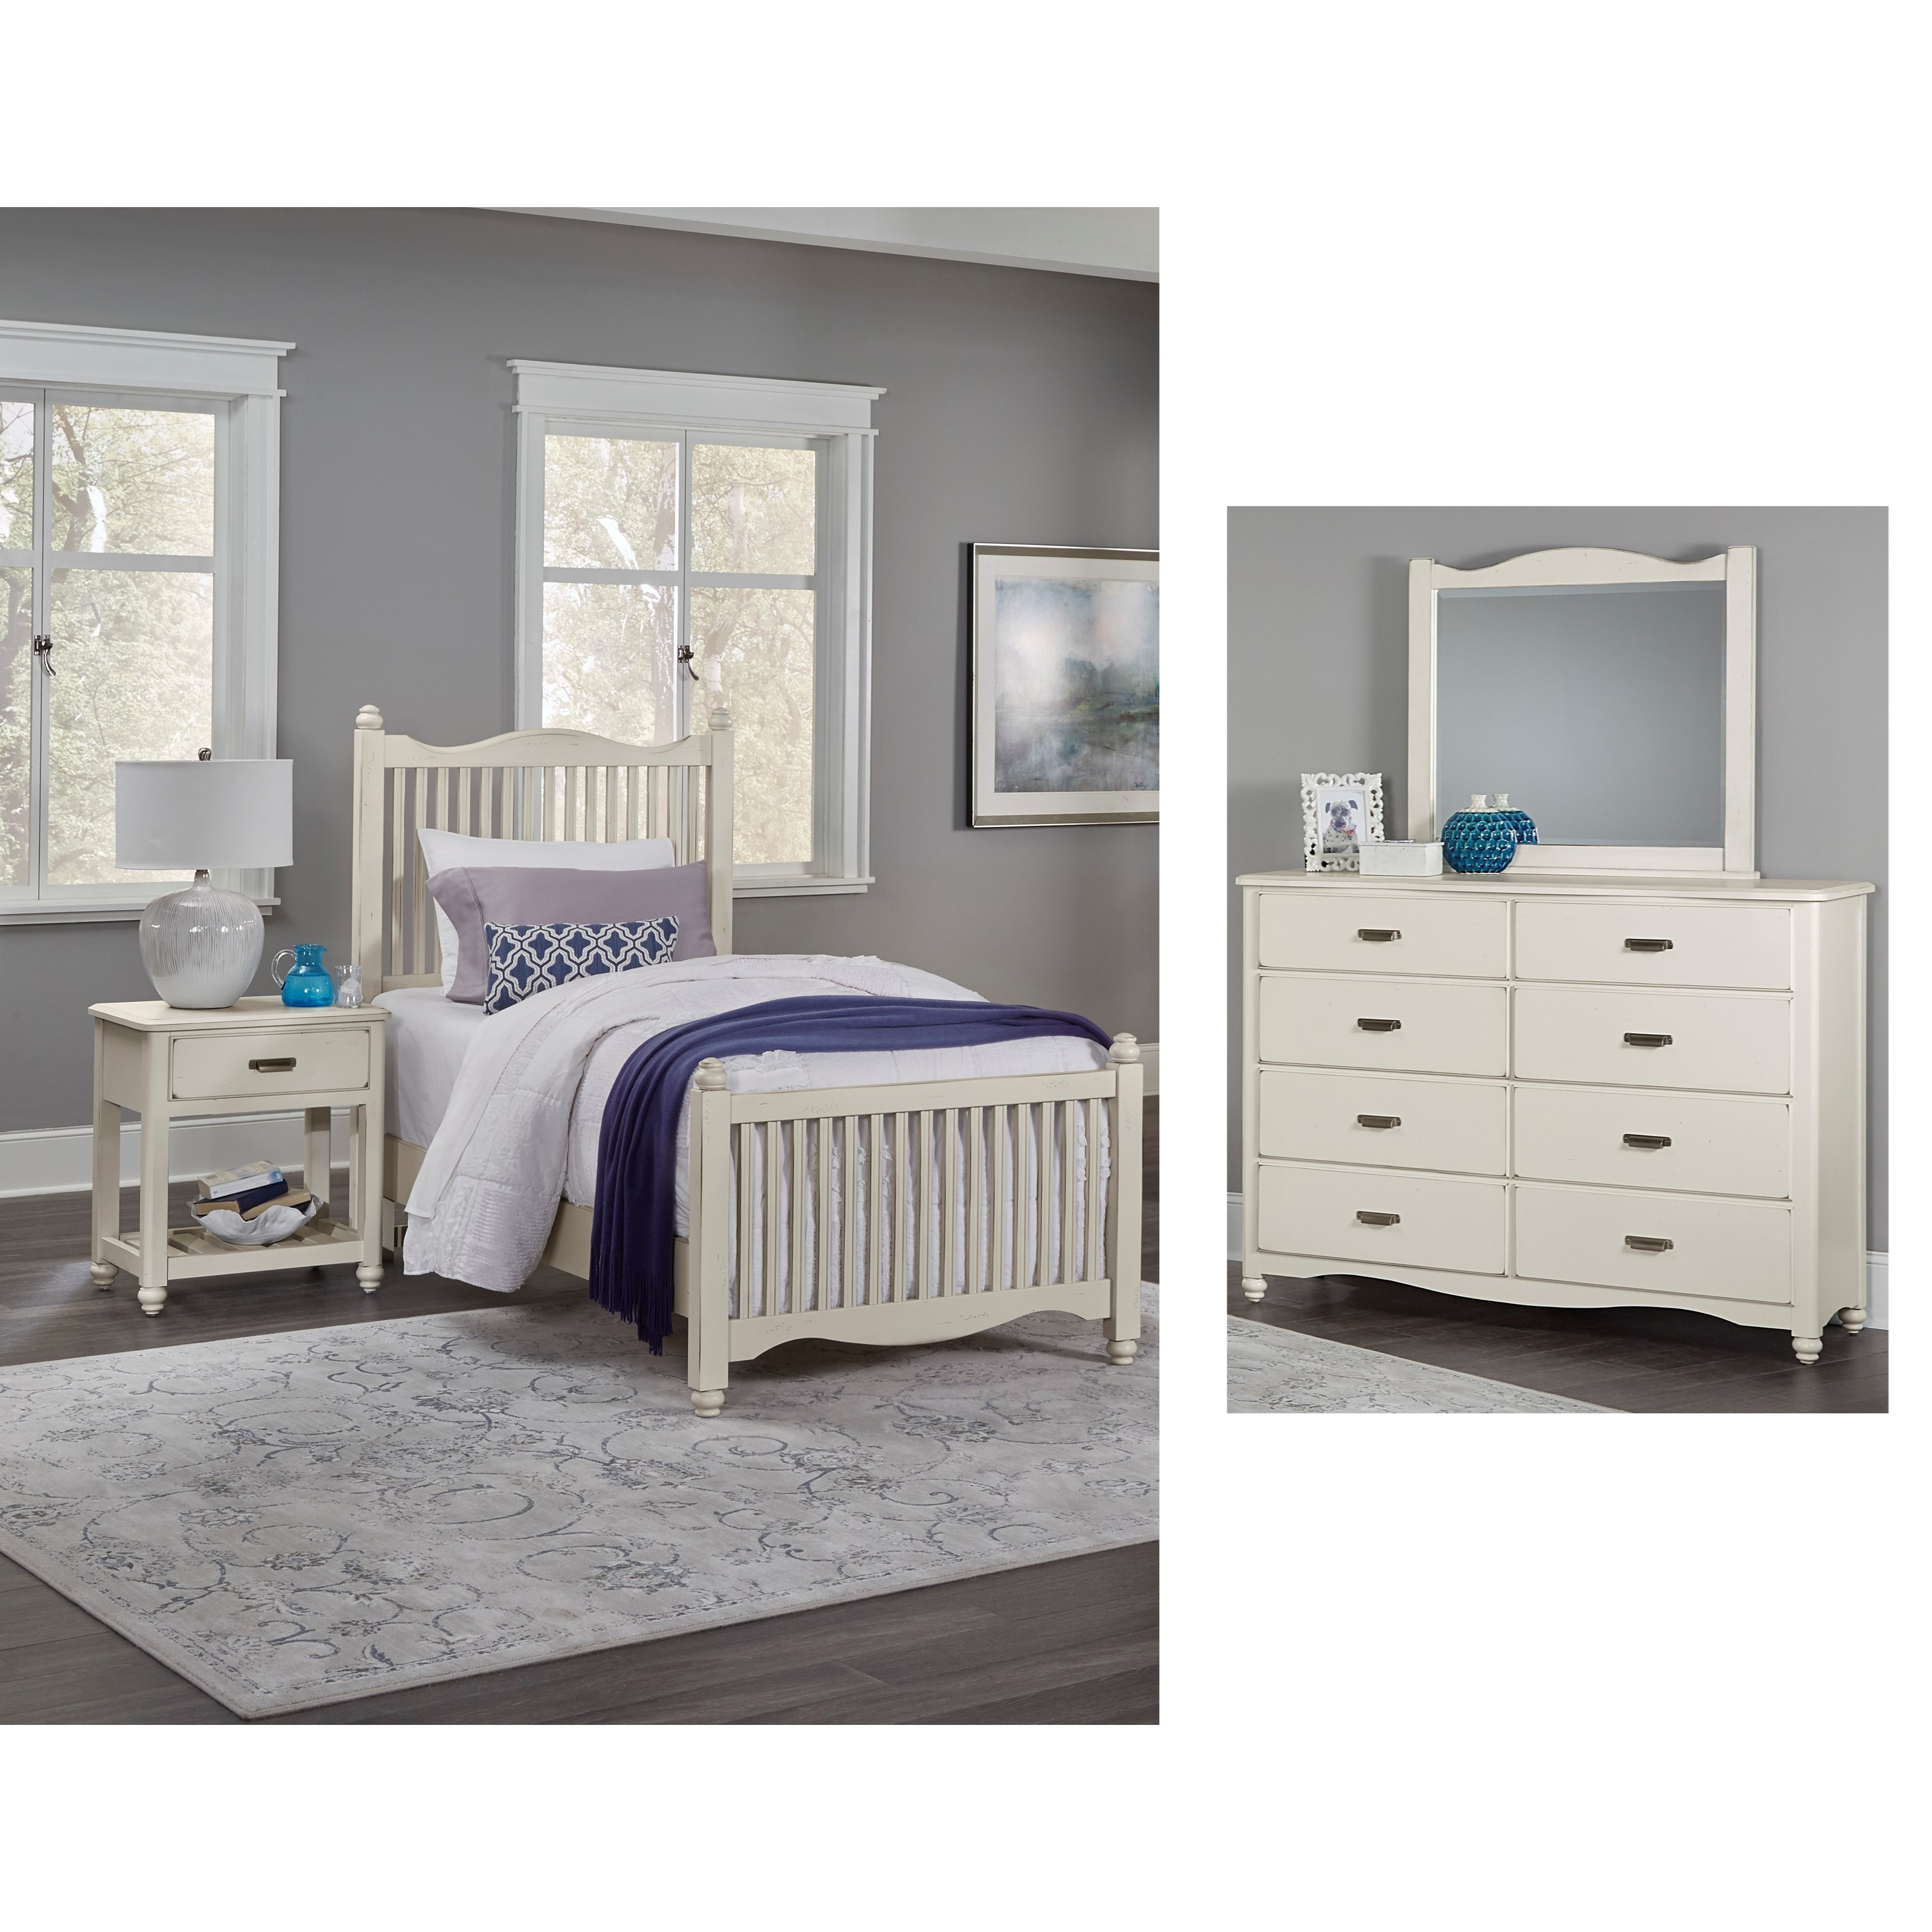 Vaughan bassett american maple twin bedroom group value for Bedroom furniture groups